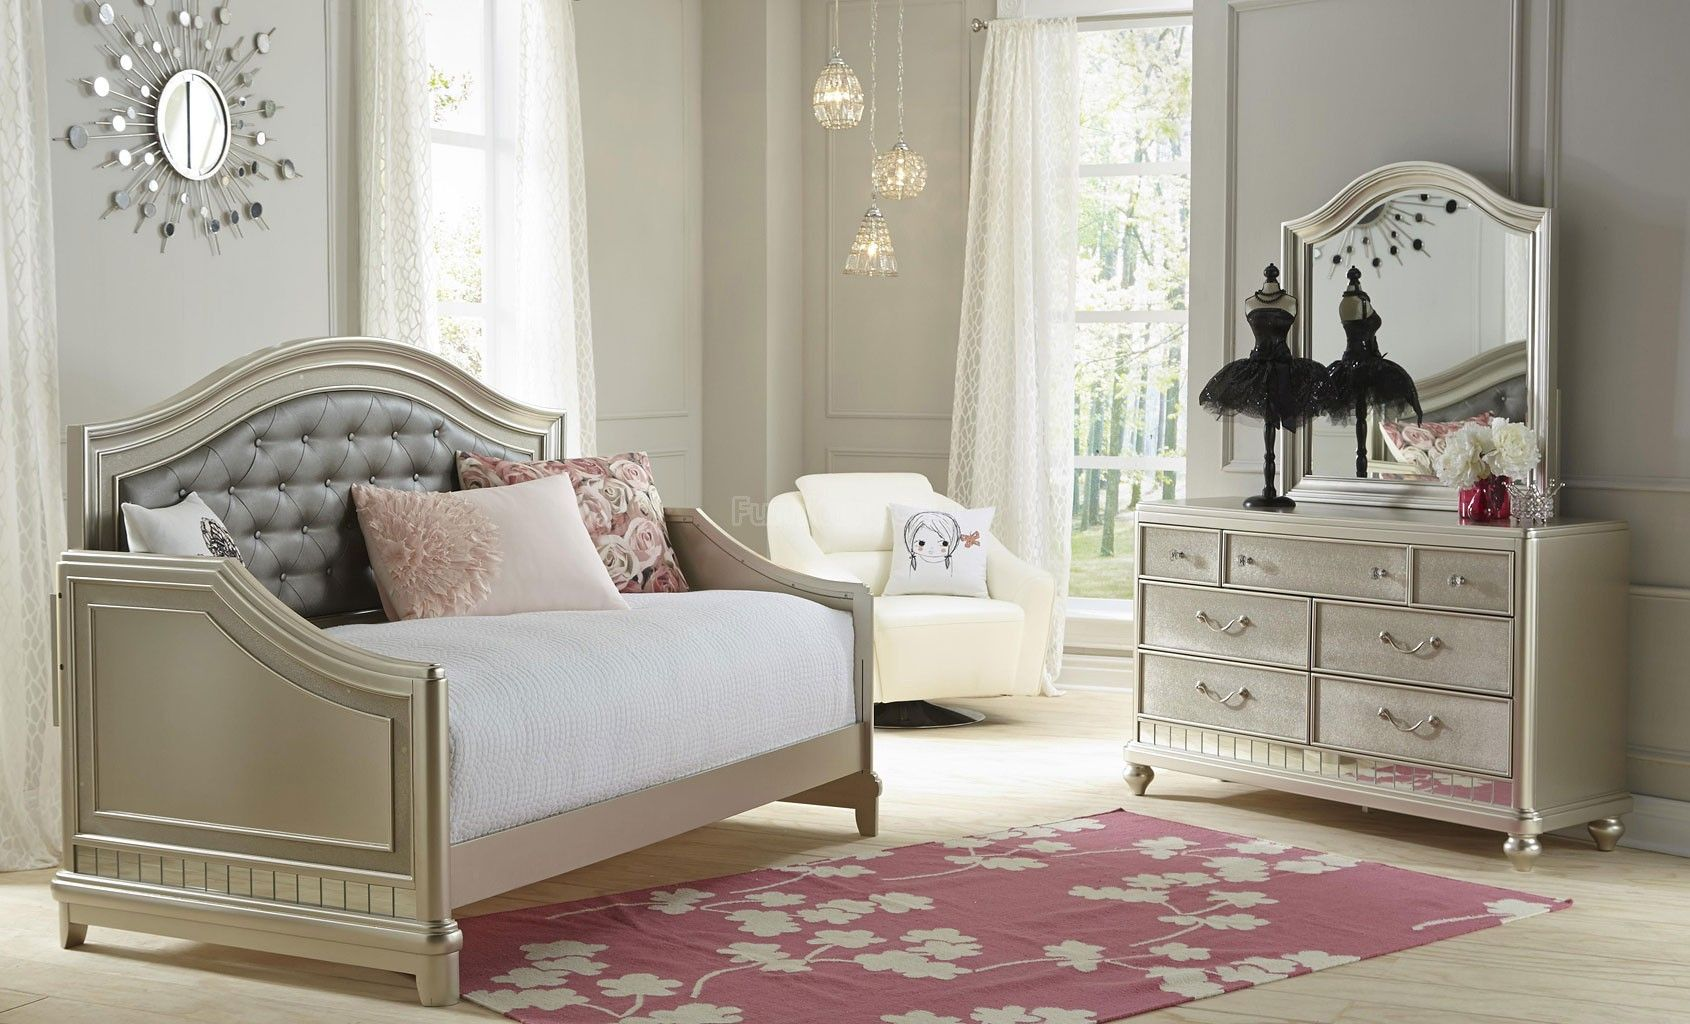 Lil Diva Daybed Bedroom Set